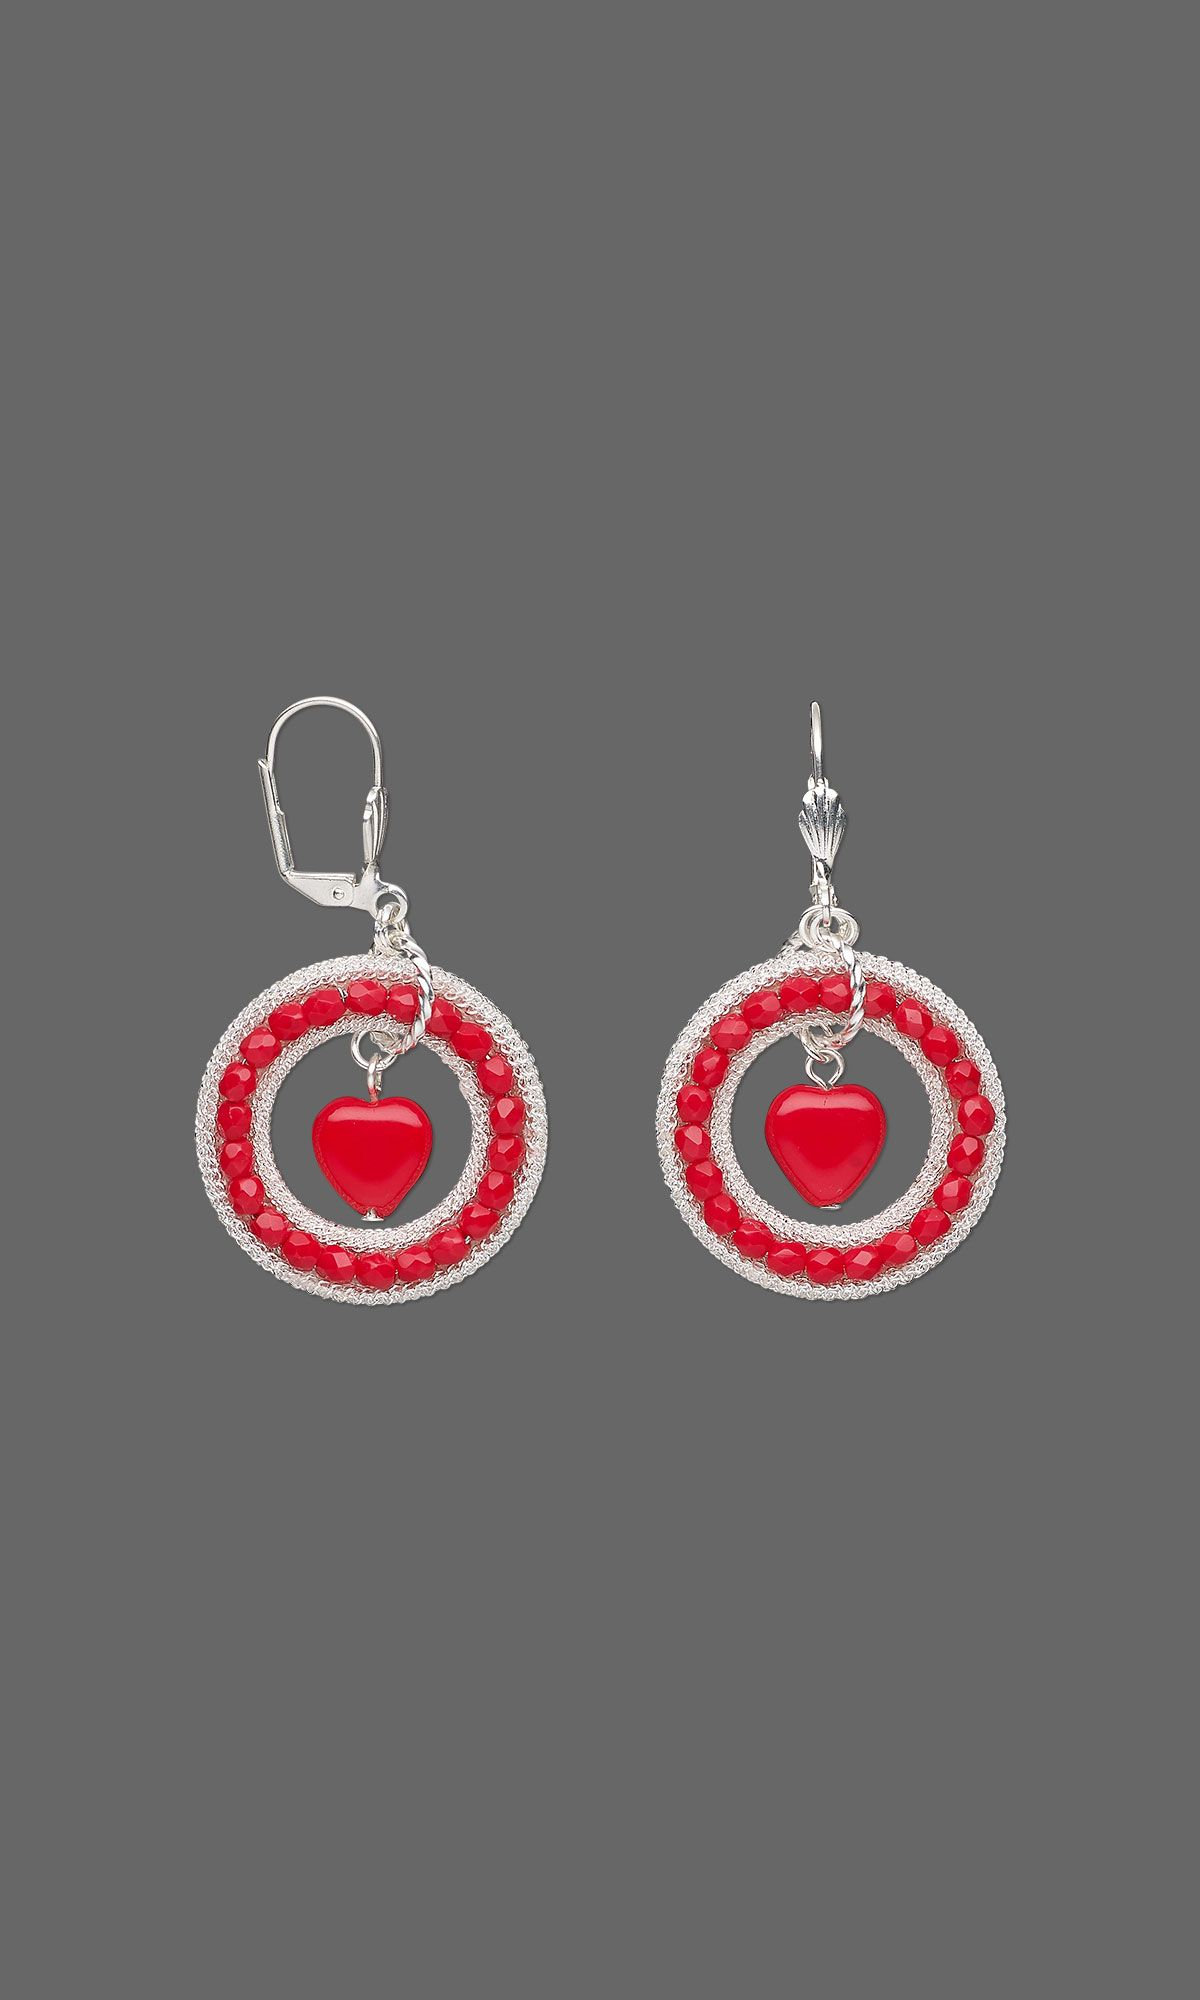 Jewelry Design - Earrings with Czech Glass Beads and Silver-Plated Brass Components - Fire Mountain Gems and Beads